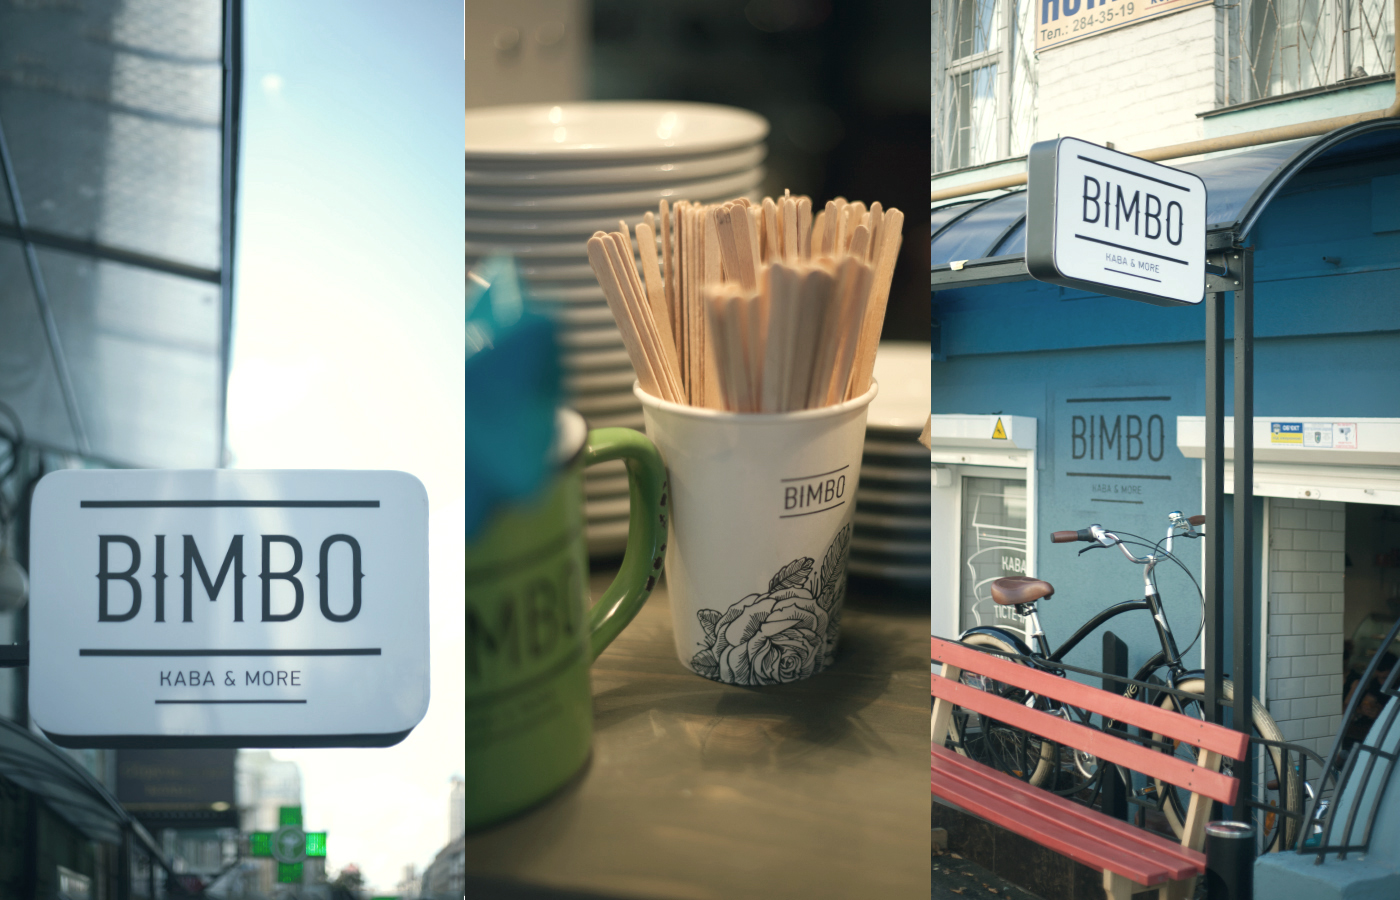 Bimbo cafe coffee bar branding by Andrii Pavlov in Ukraine